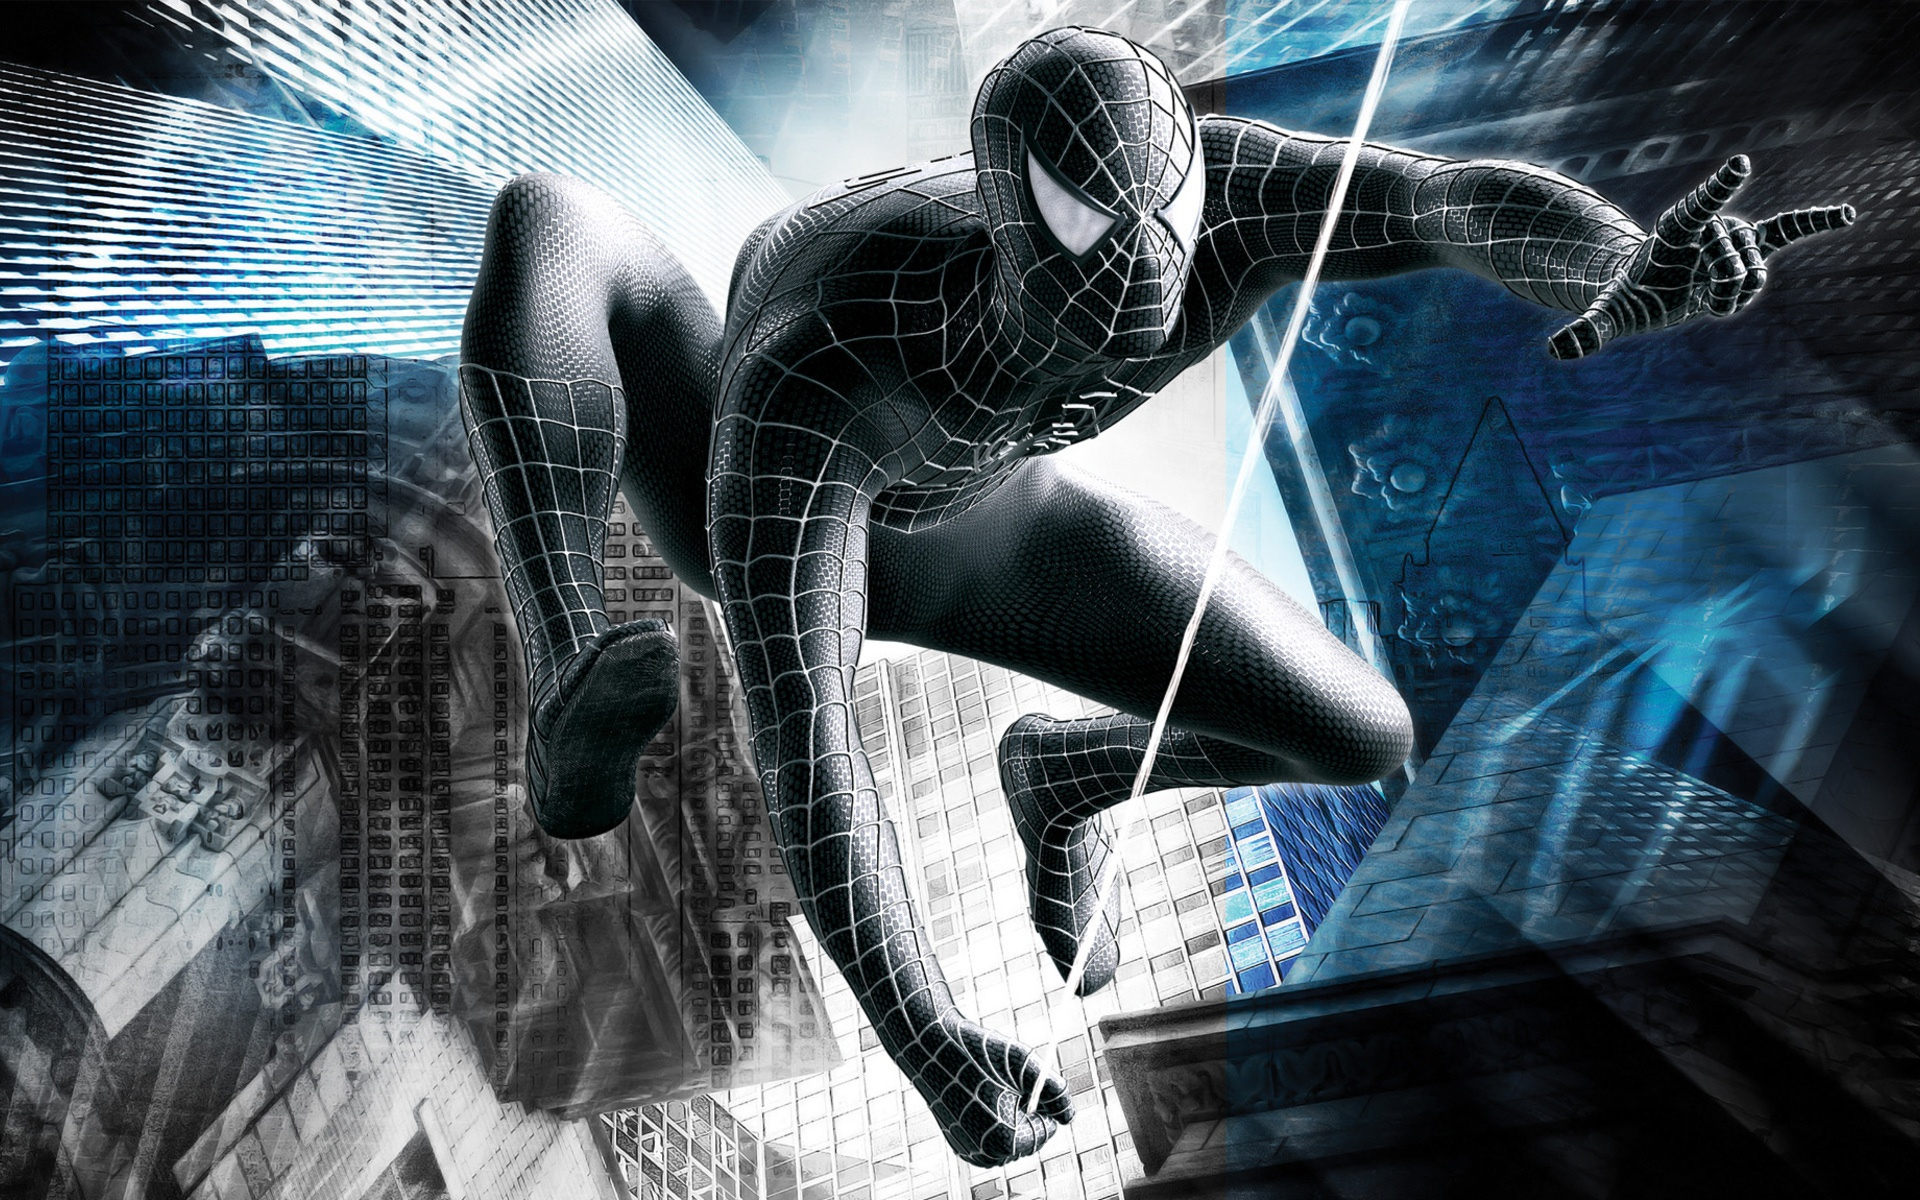 Spider man 3 hd wallpapers in jpg format for free download - Spider hd images download ...